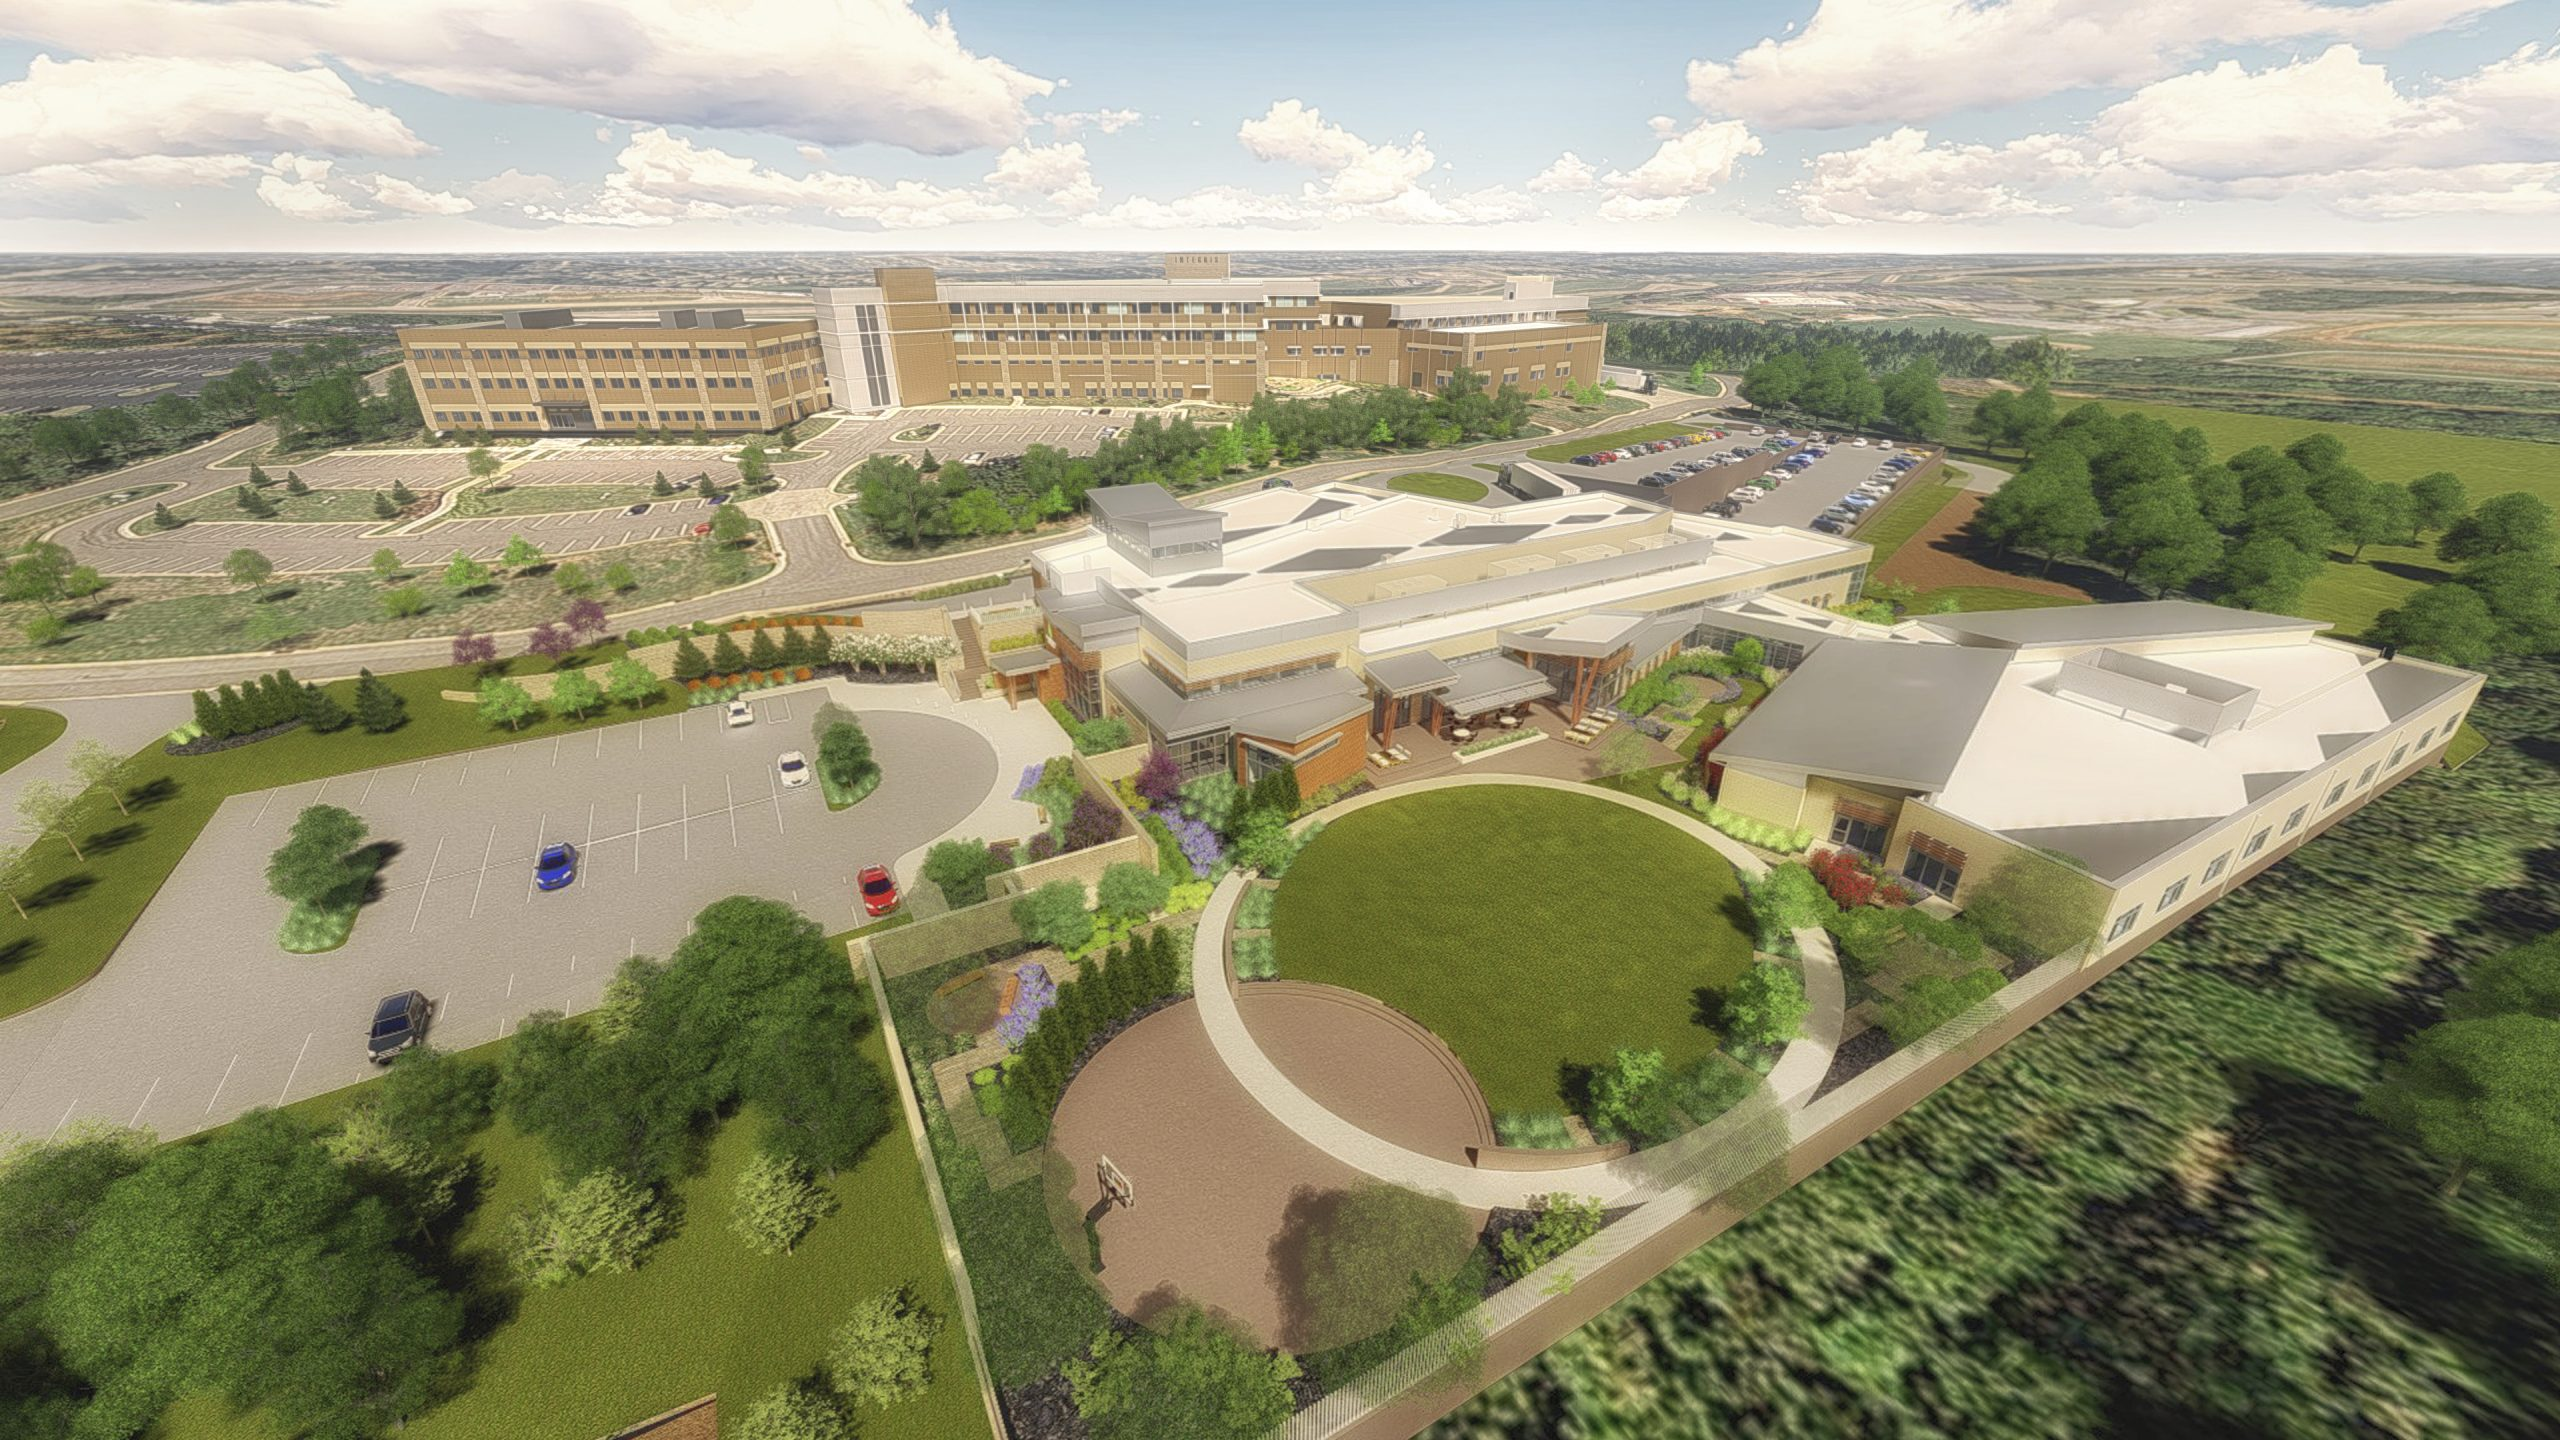 INTEGRIS health Edmond hospital campus site design